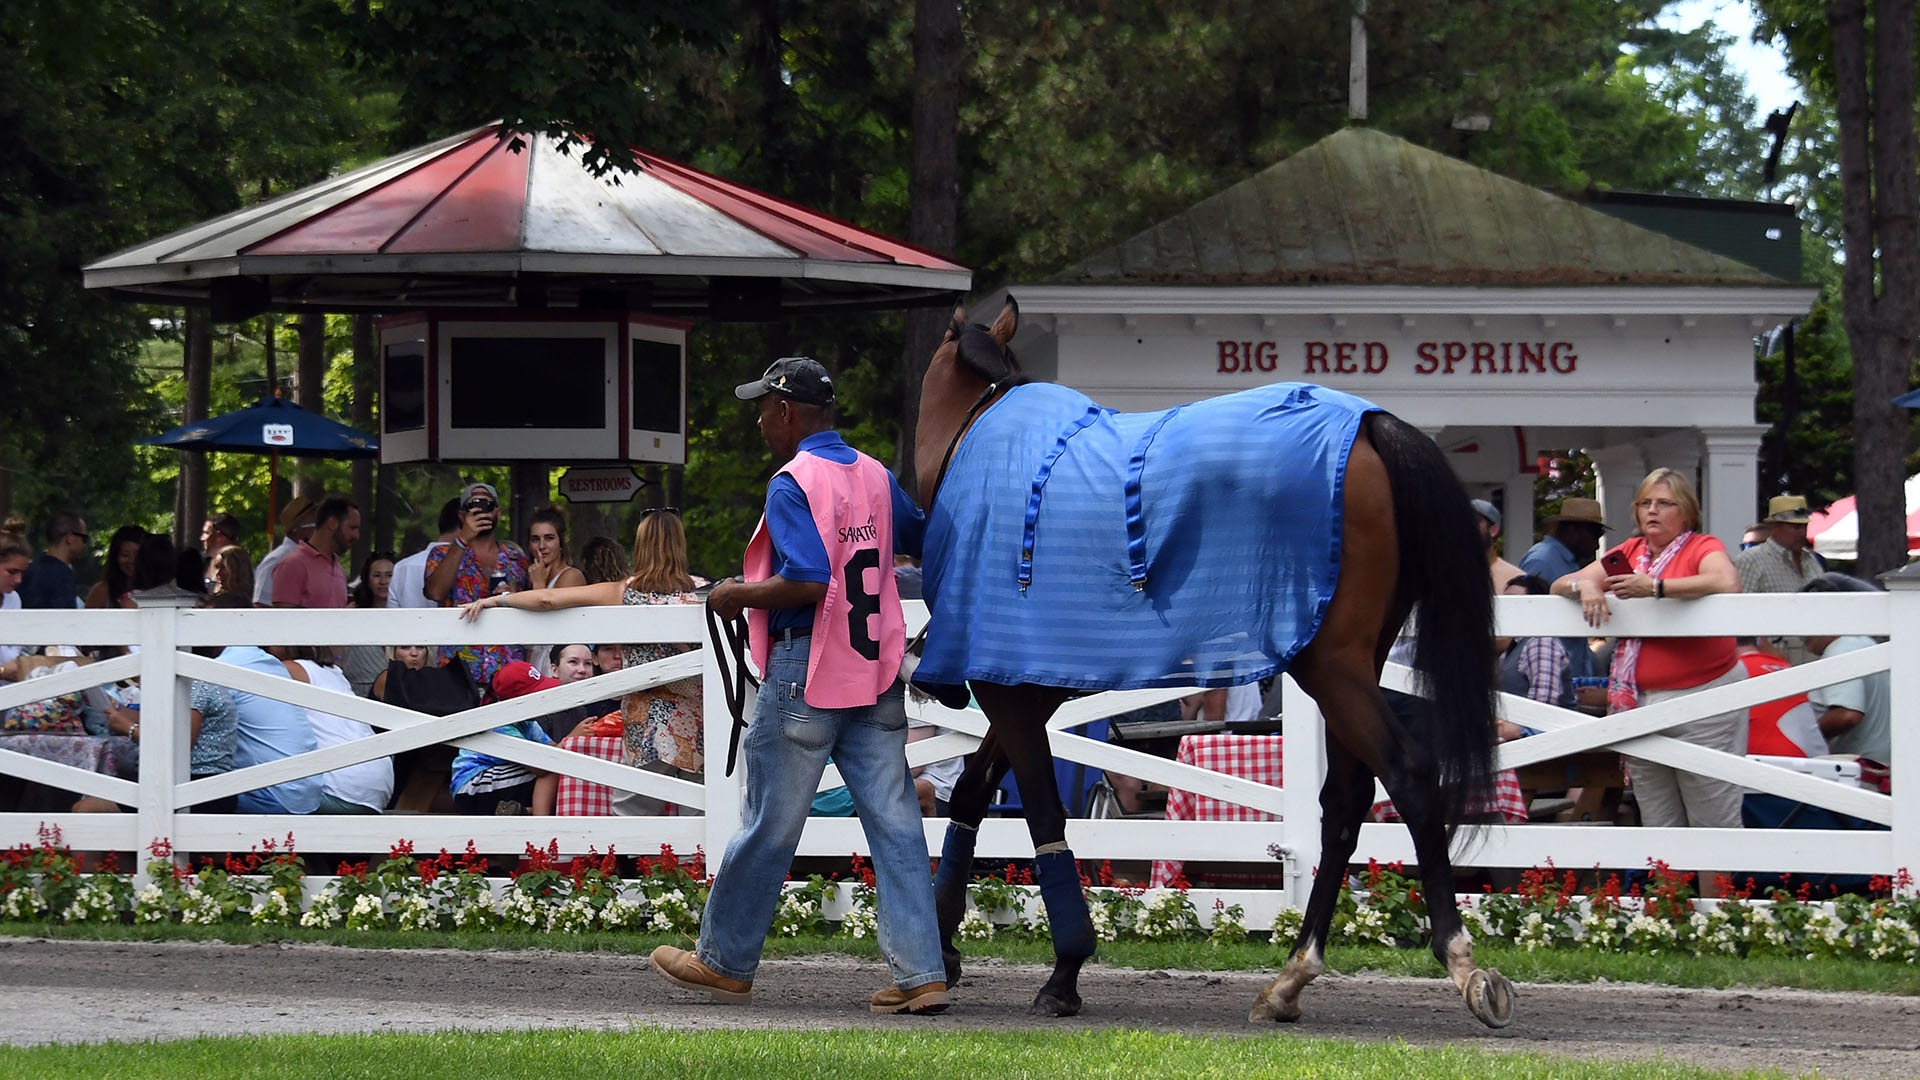 Rocketry in the paddock at Saratoga Race Course